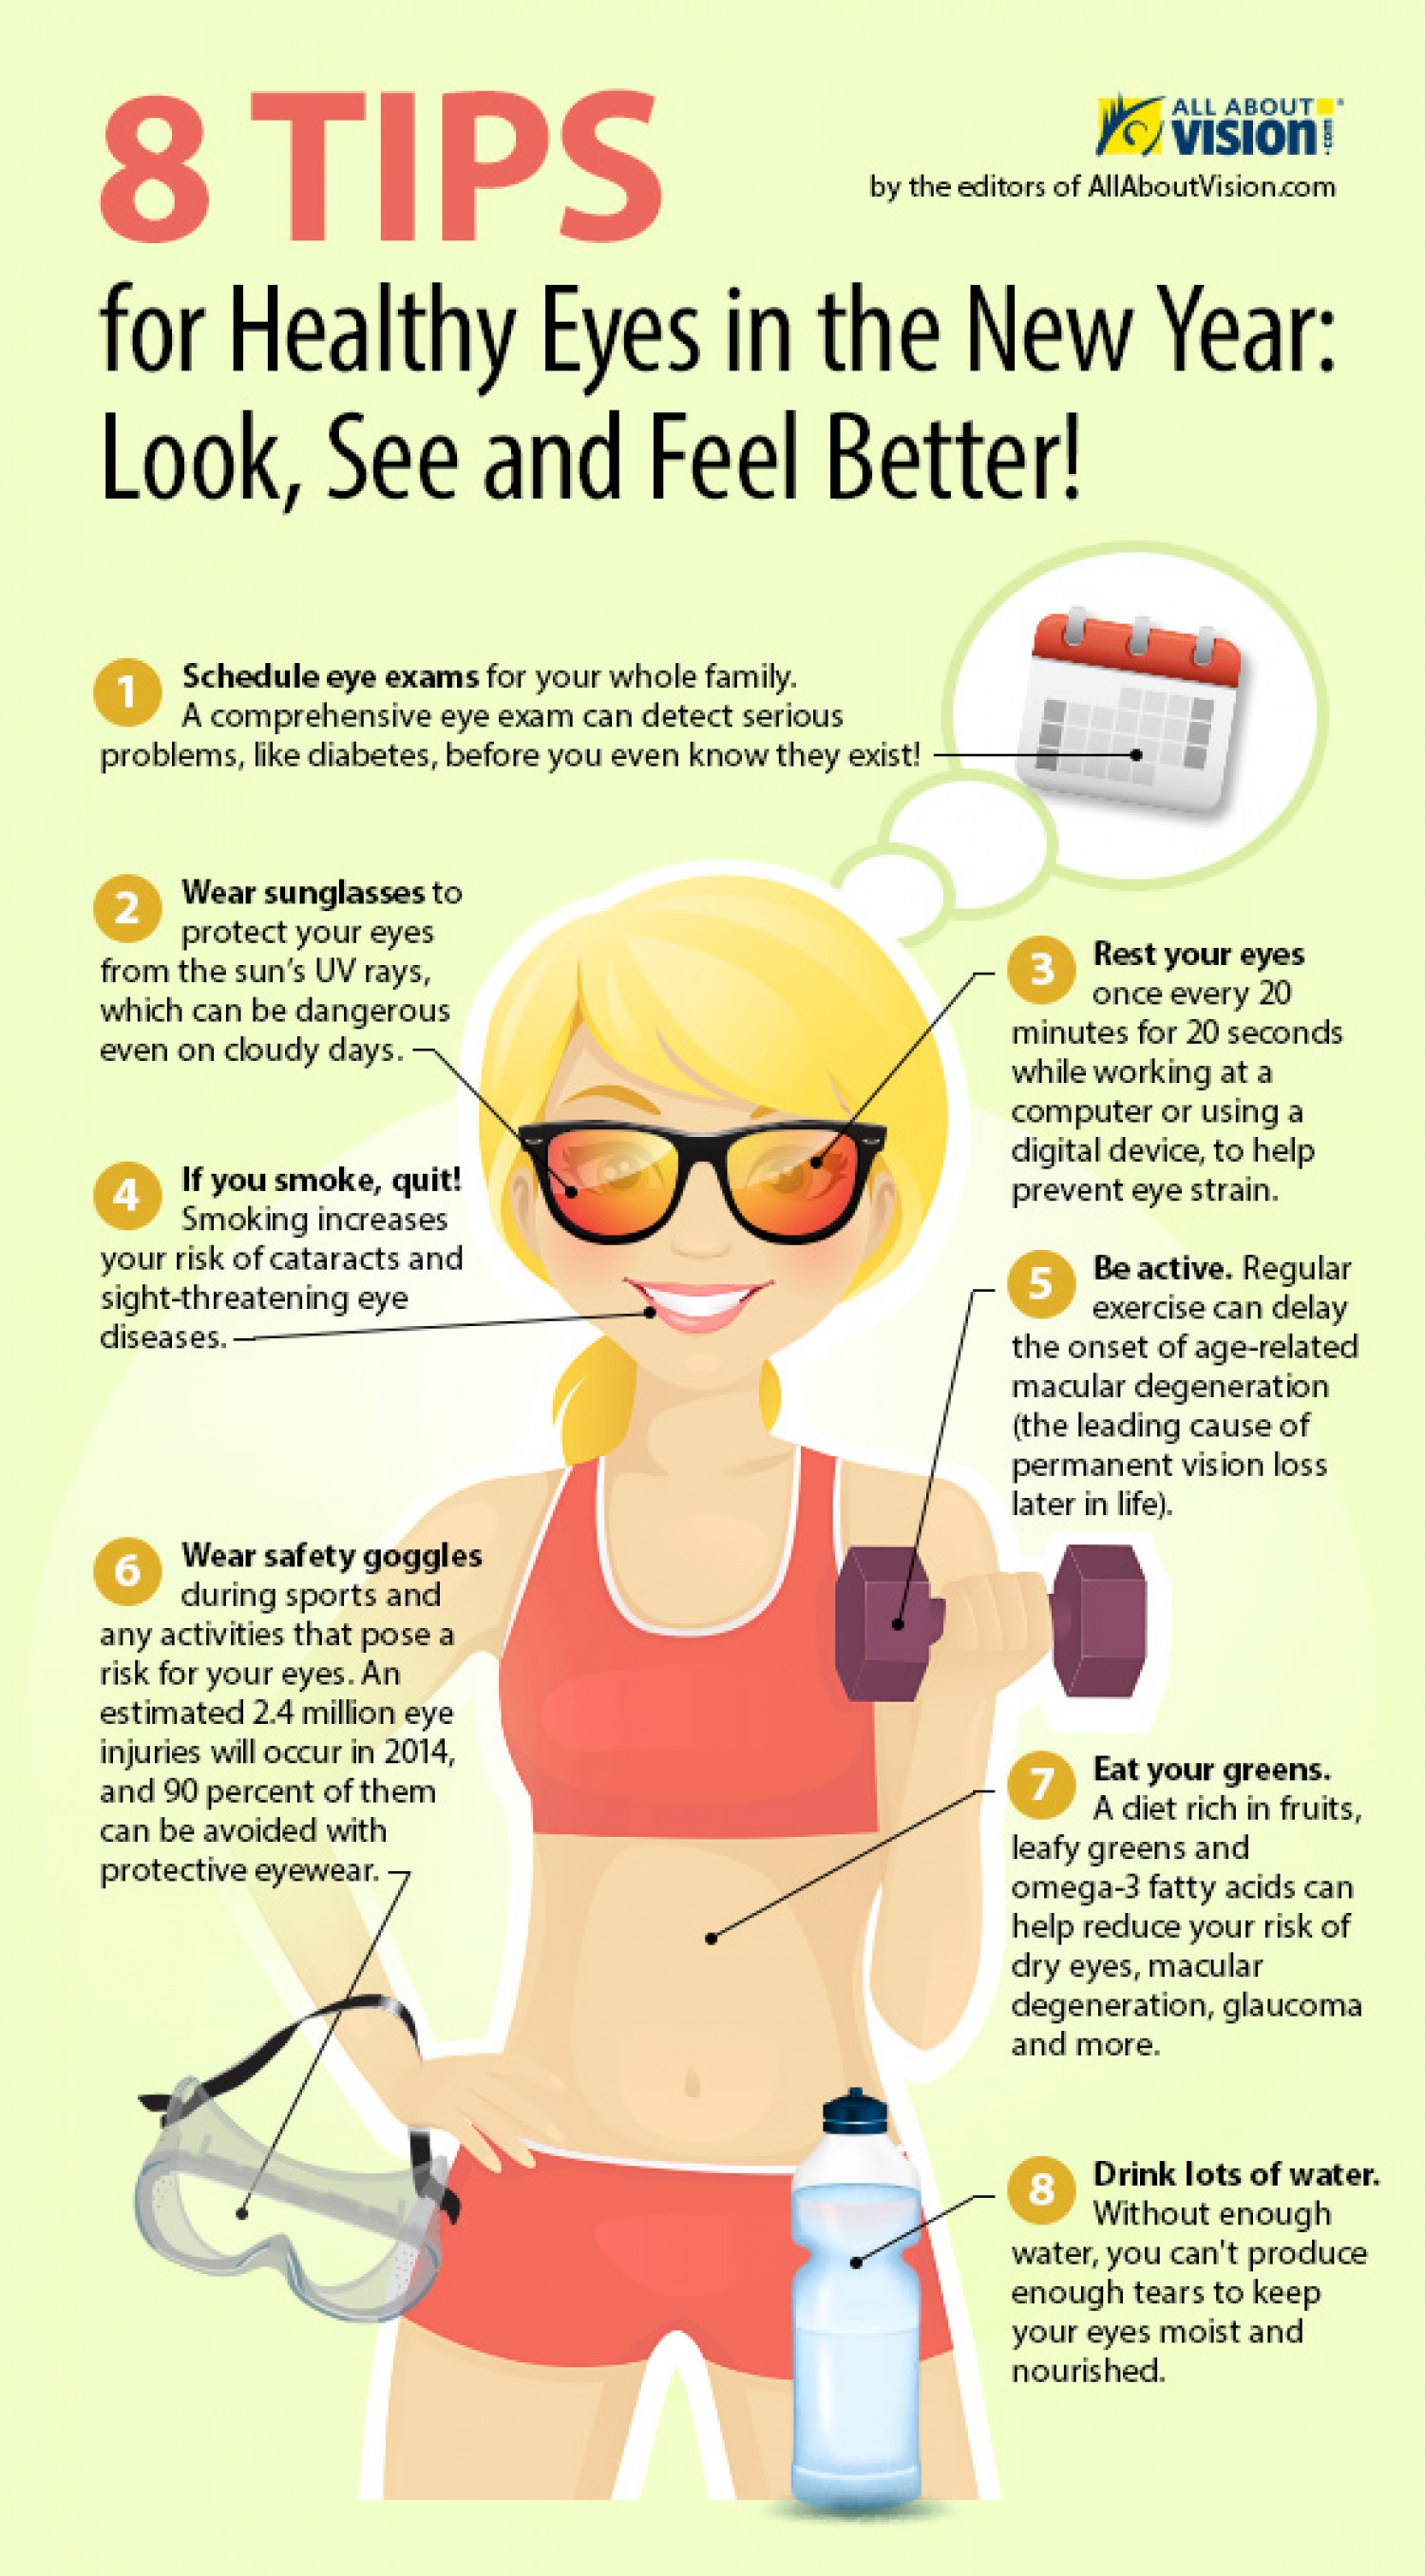 8 Tips for Healthy Eyes in the New Year Infographic